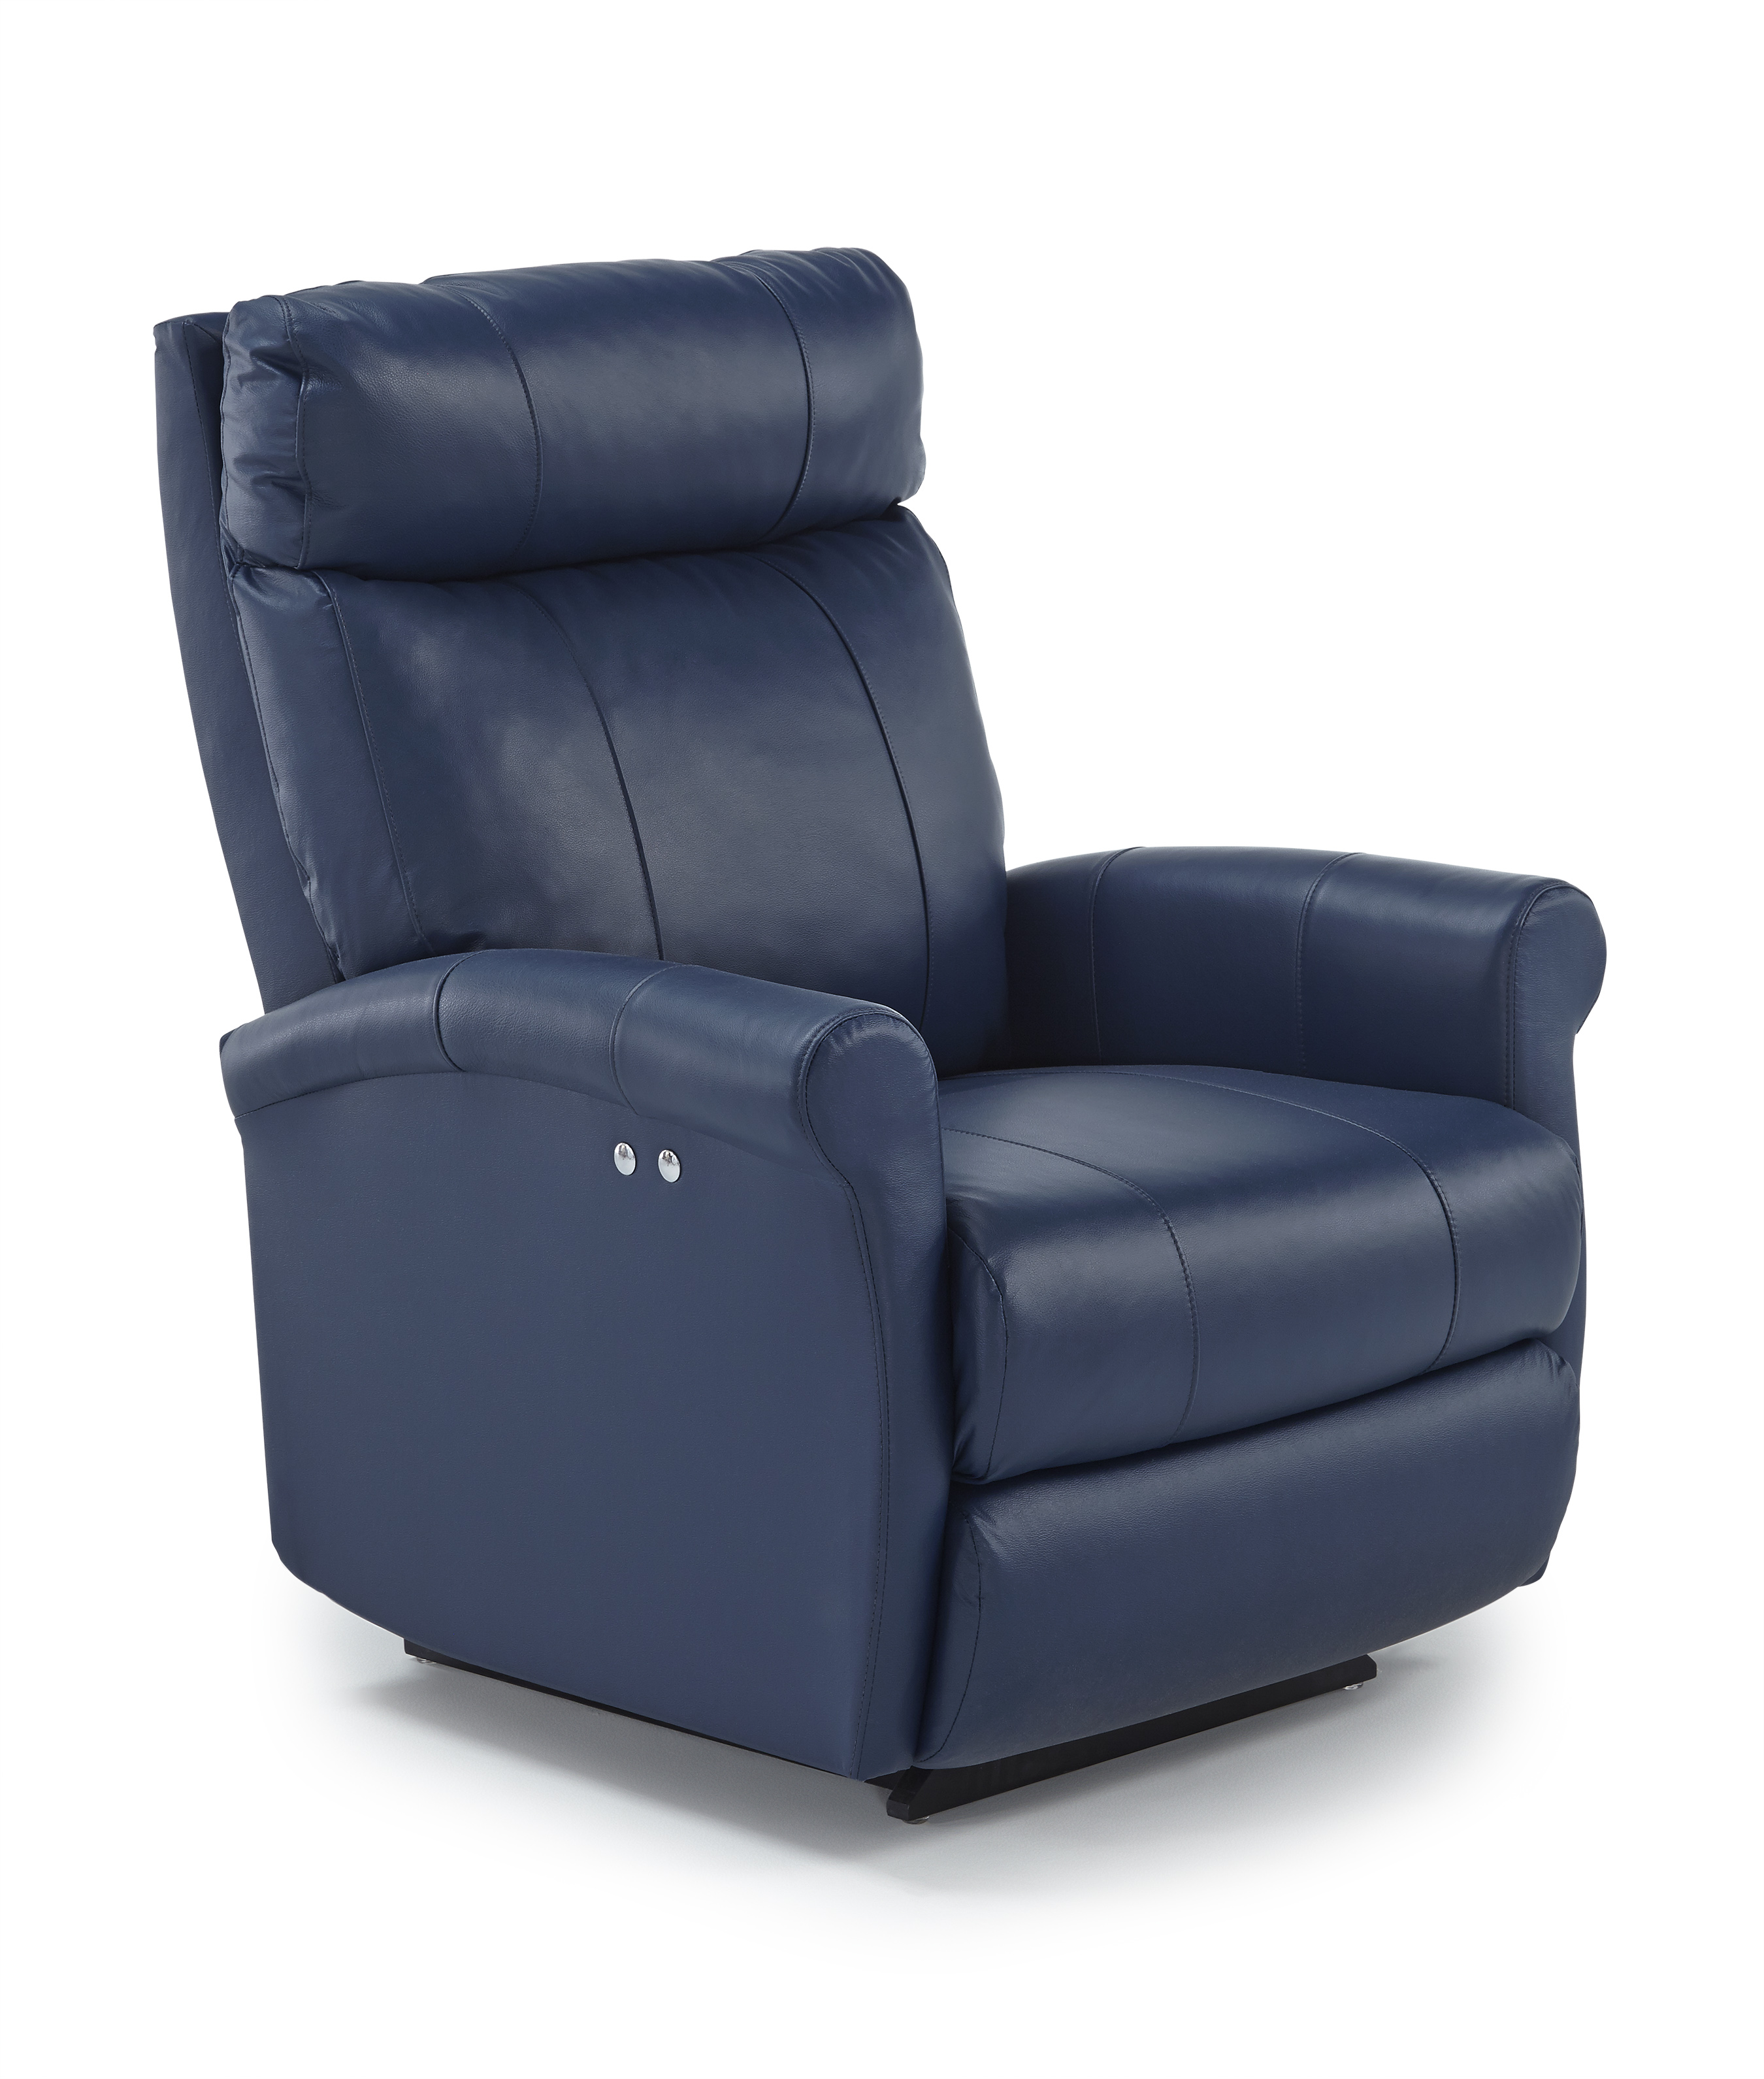 used recliners langston via download a high recliner product com image email share flexsteel resolution